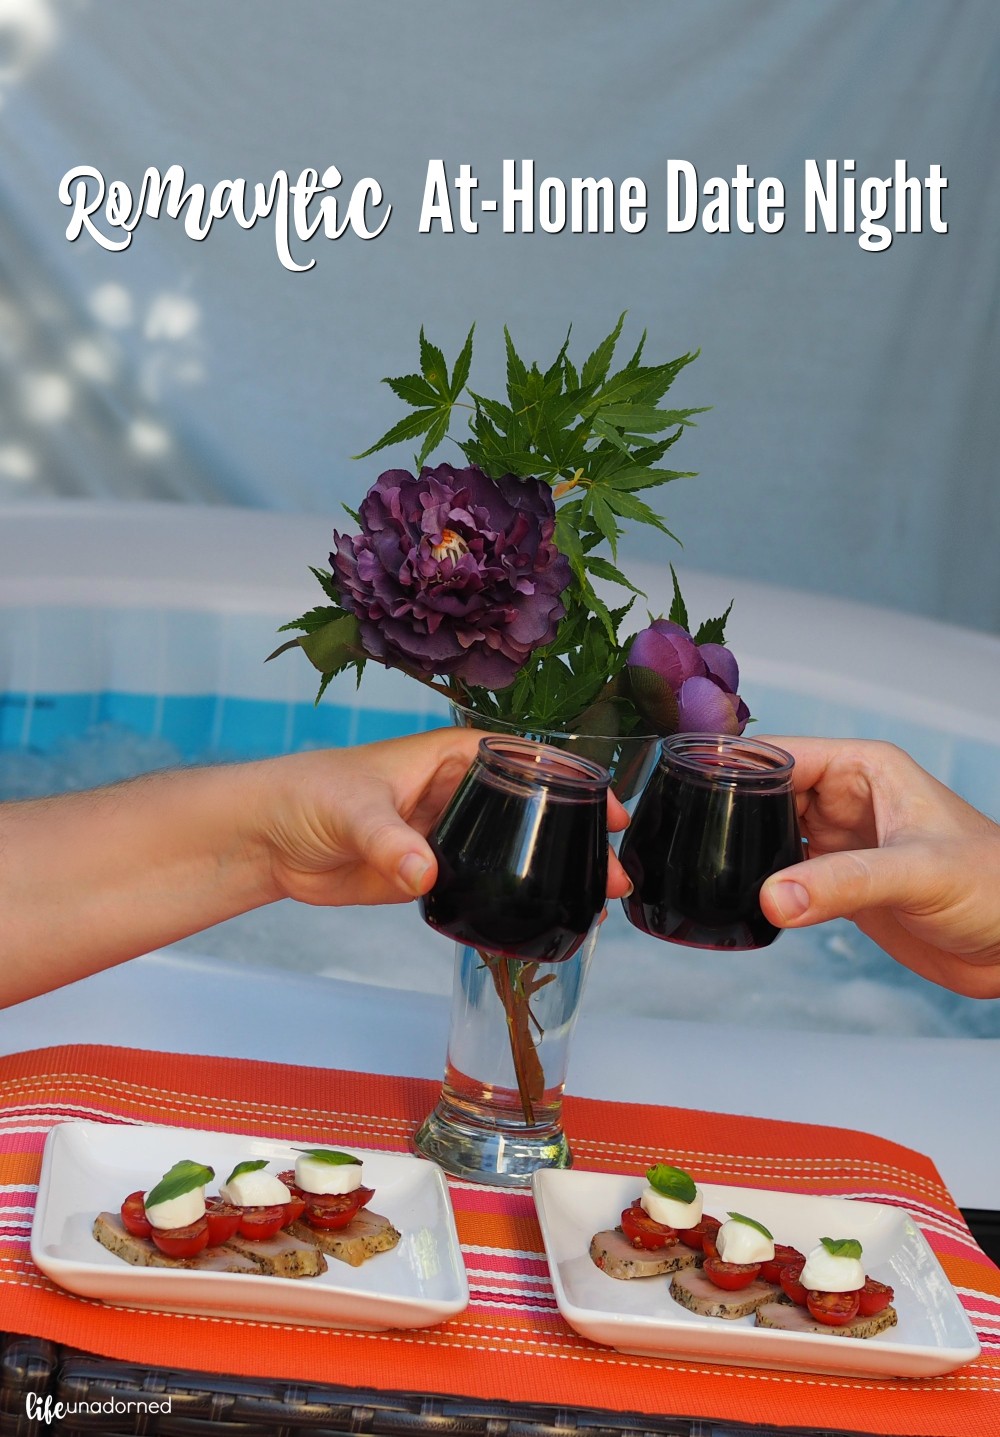 Romantic-At-Home-Date-Night-tips-and-ideas-for-the-perfect-evening-plus-recipe-for-bruschetta-pork-tenderloin